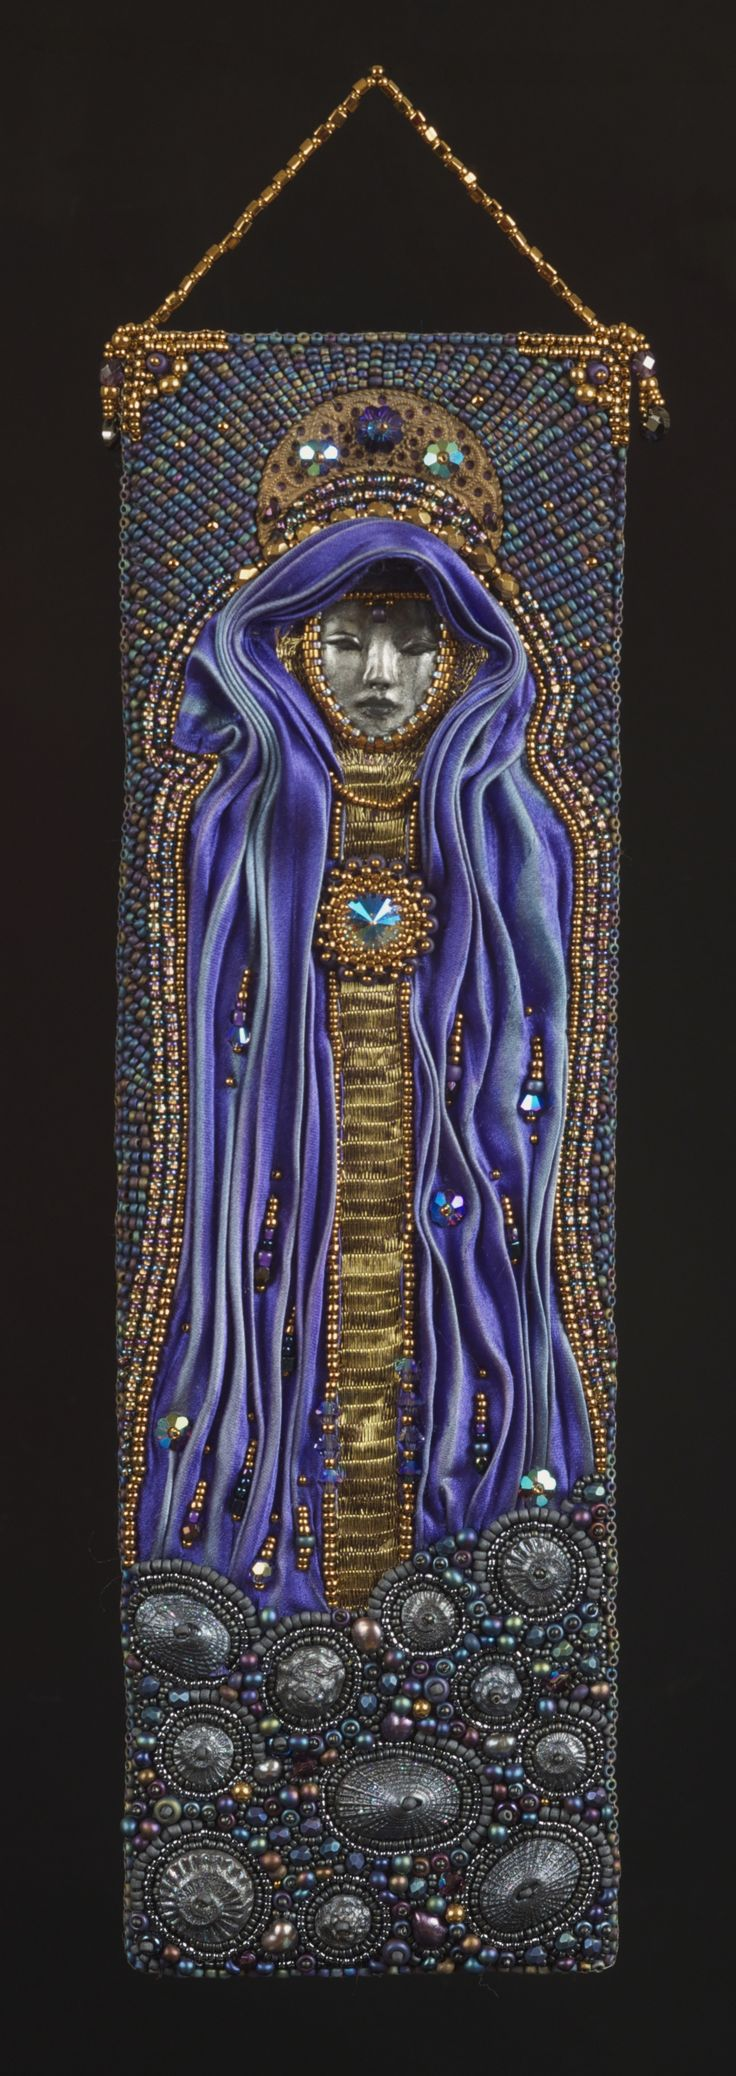 Rising - Bead embroidered wall hanging. www.nedbeads.com